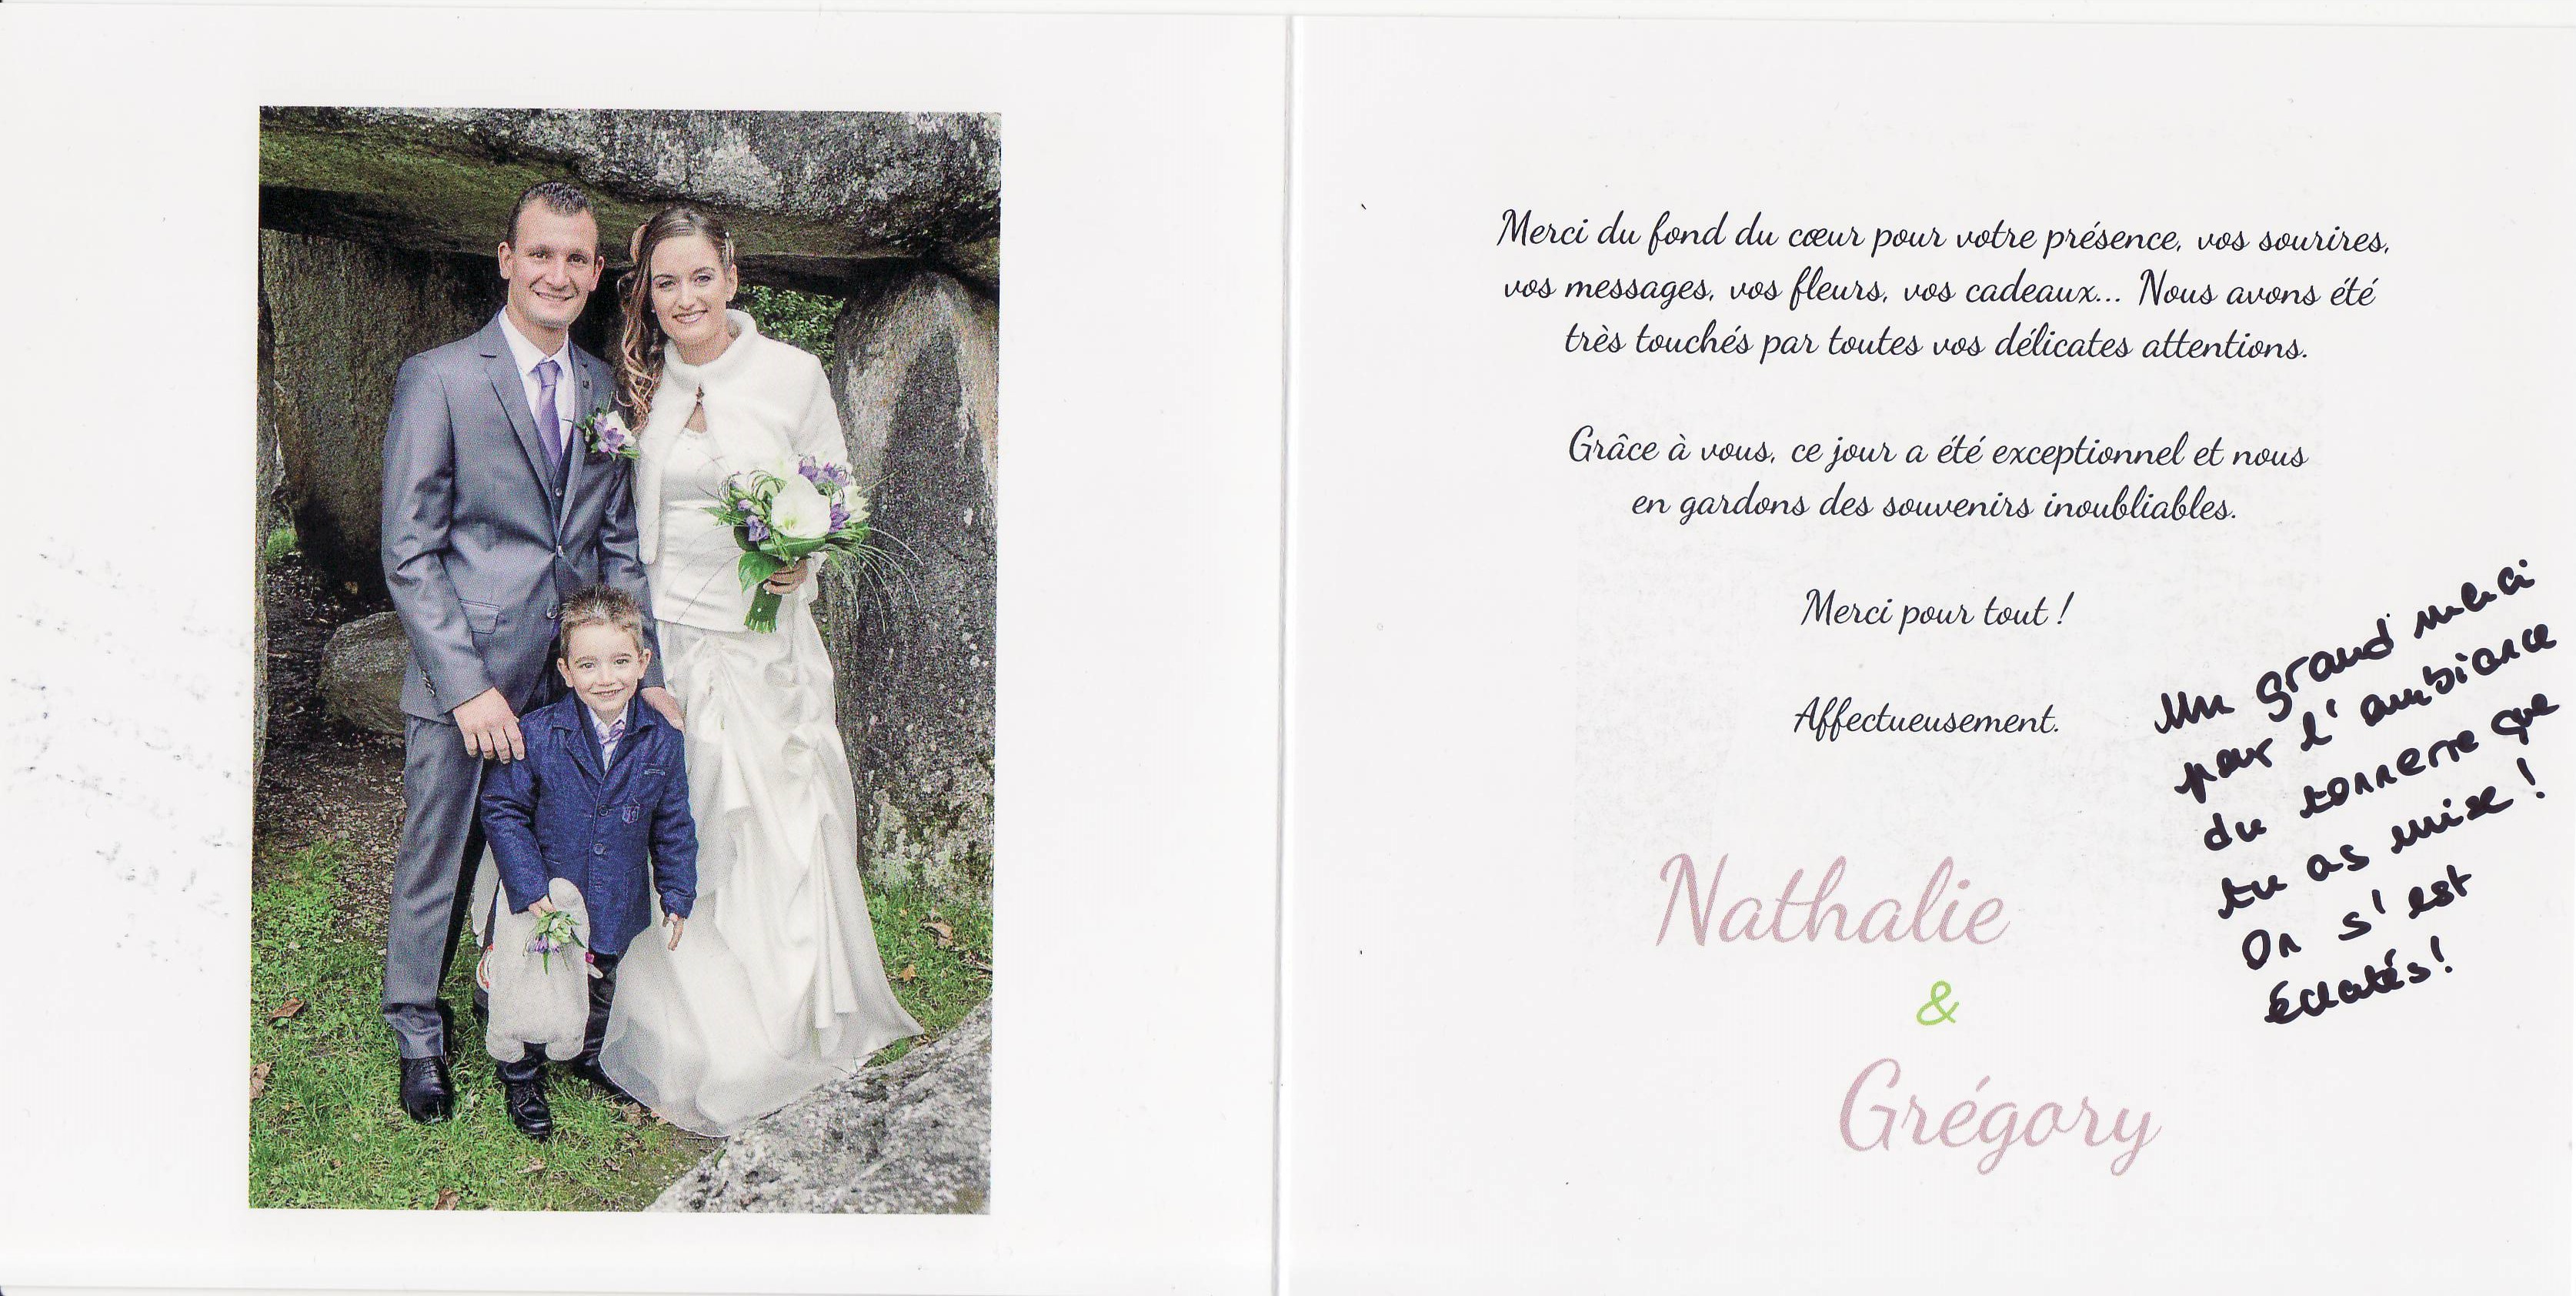 Mariage_BOSSON_Grégory_&_Nathalie_(Pers_Jussy)_(10-10-2015)_2